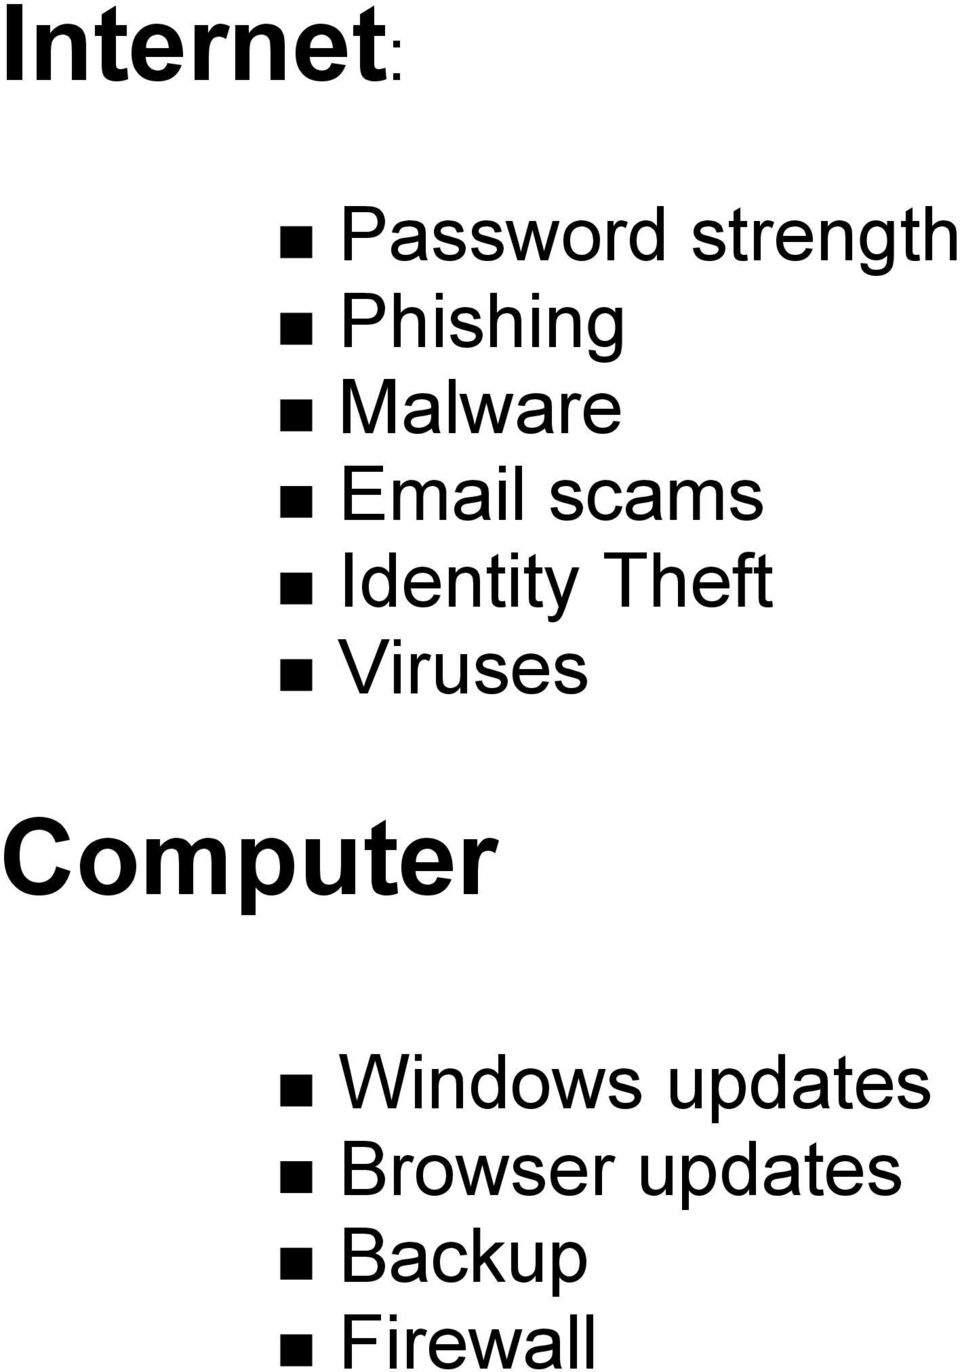 scams Identity Theft Viruses